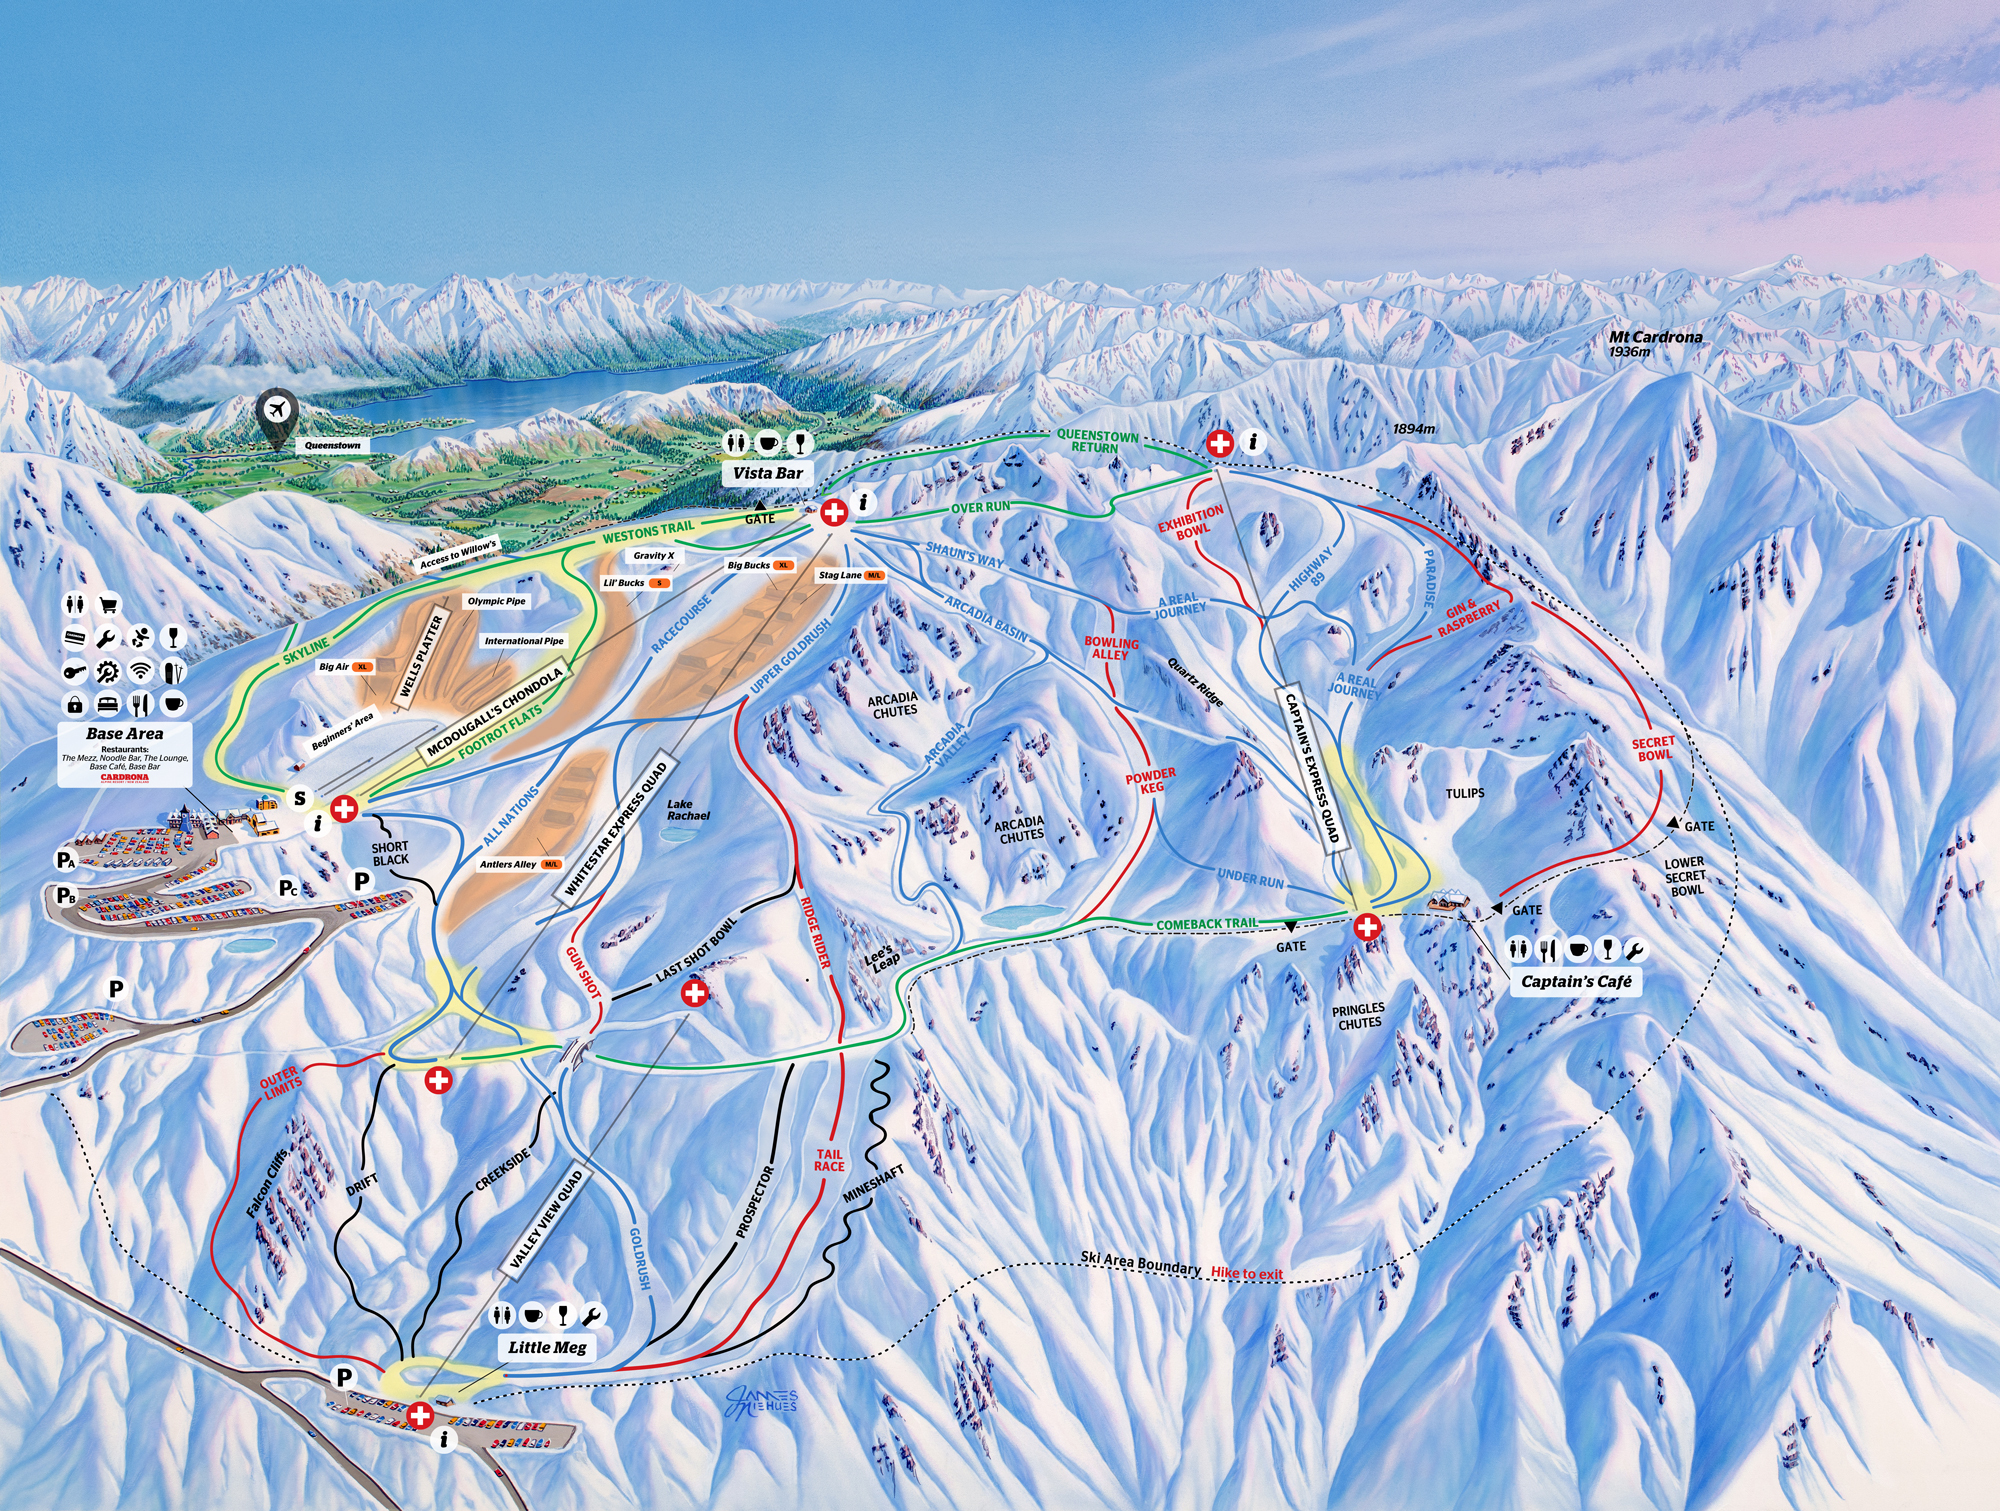 A map of the Cardrona ski field